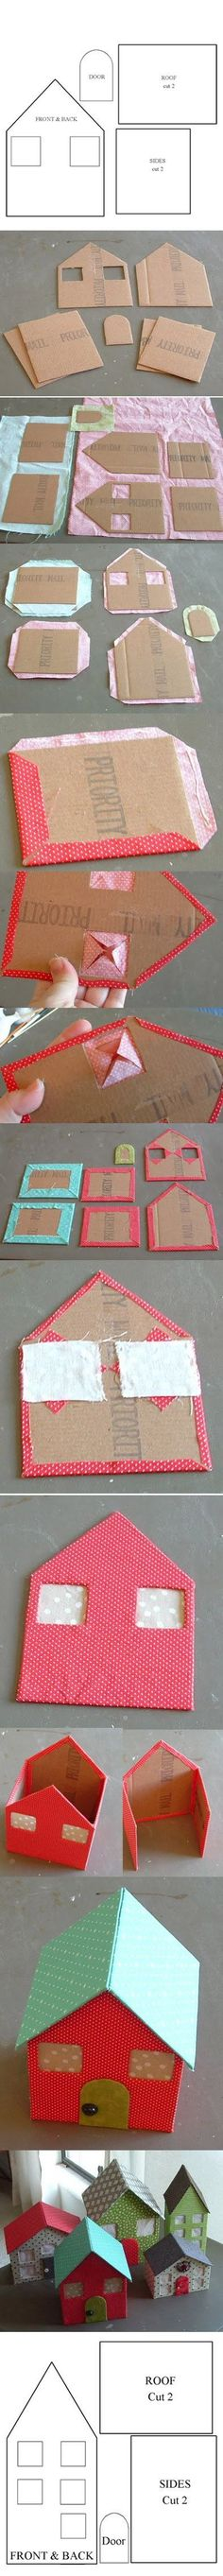 DIY Little Cardboard Houses -thecartbeforethehorse.blogspot.com